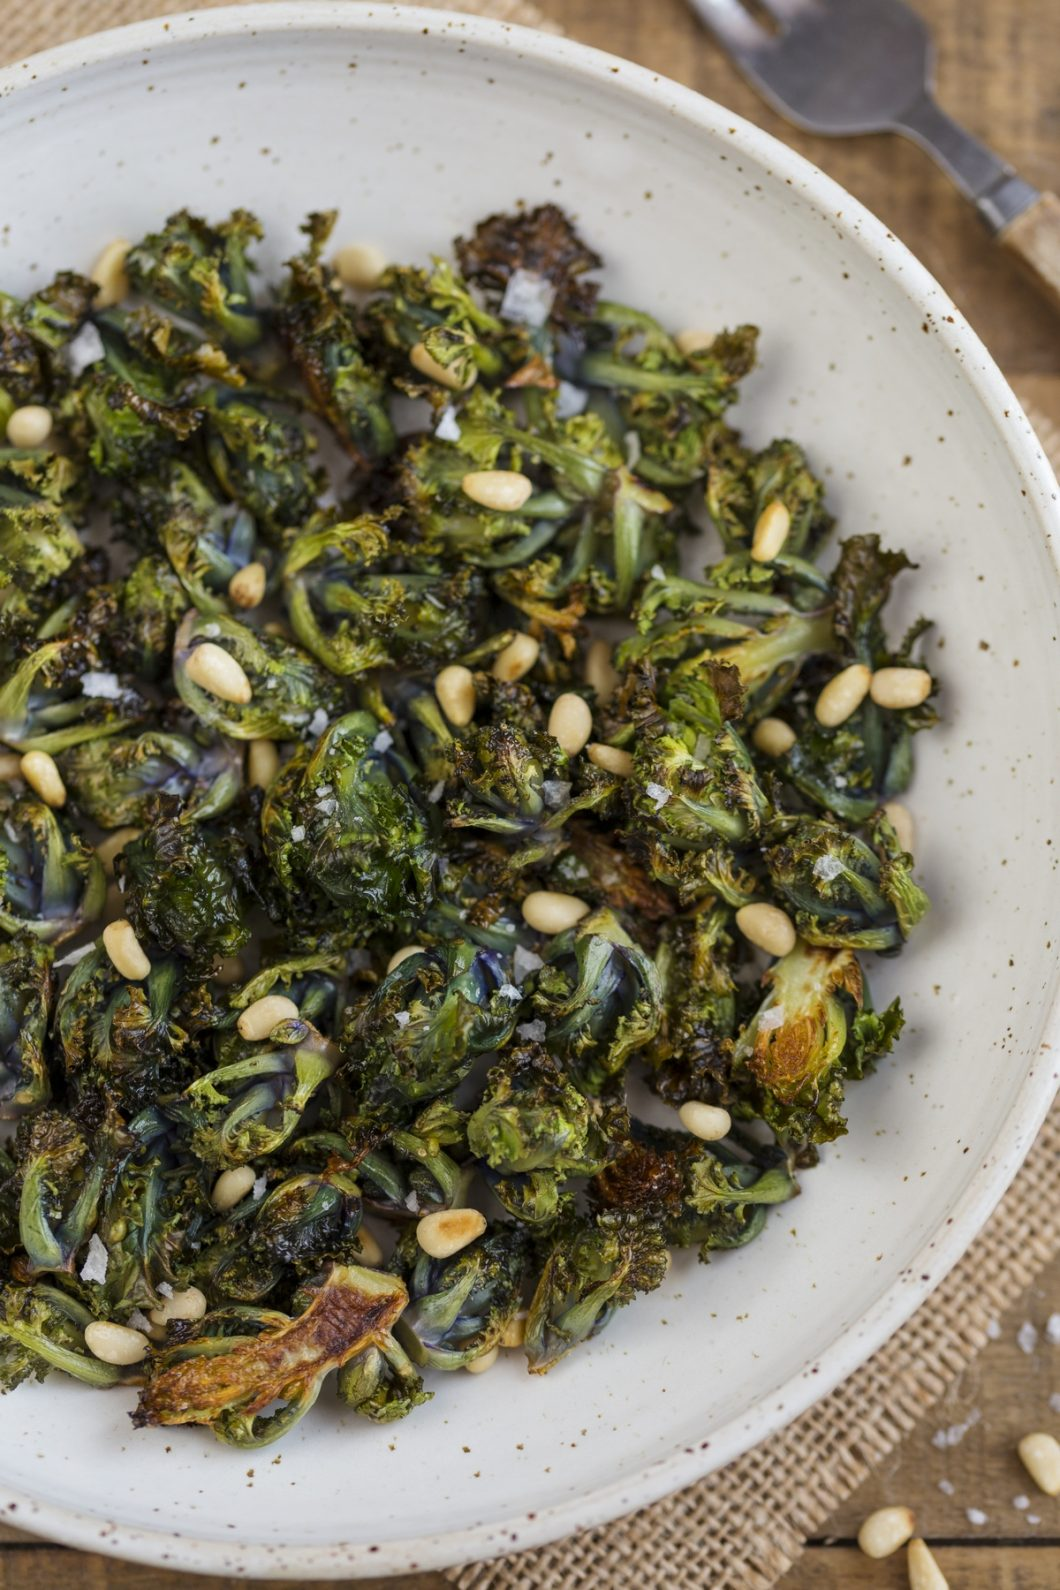 Closeup of roasted flower sprouts with pine nuts.